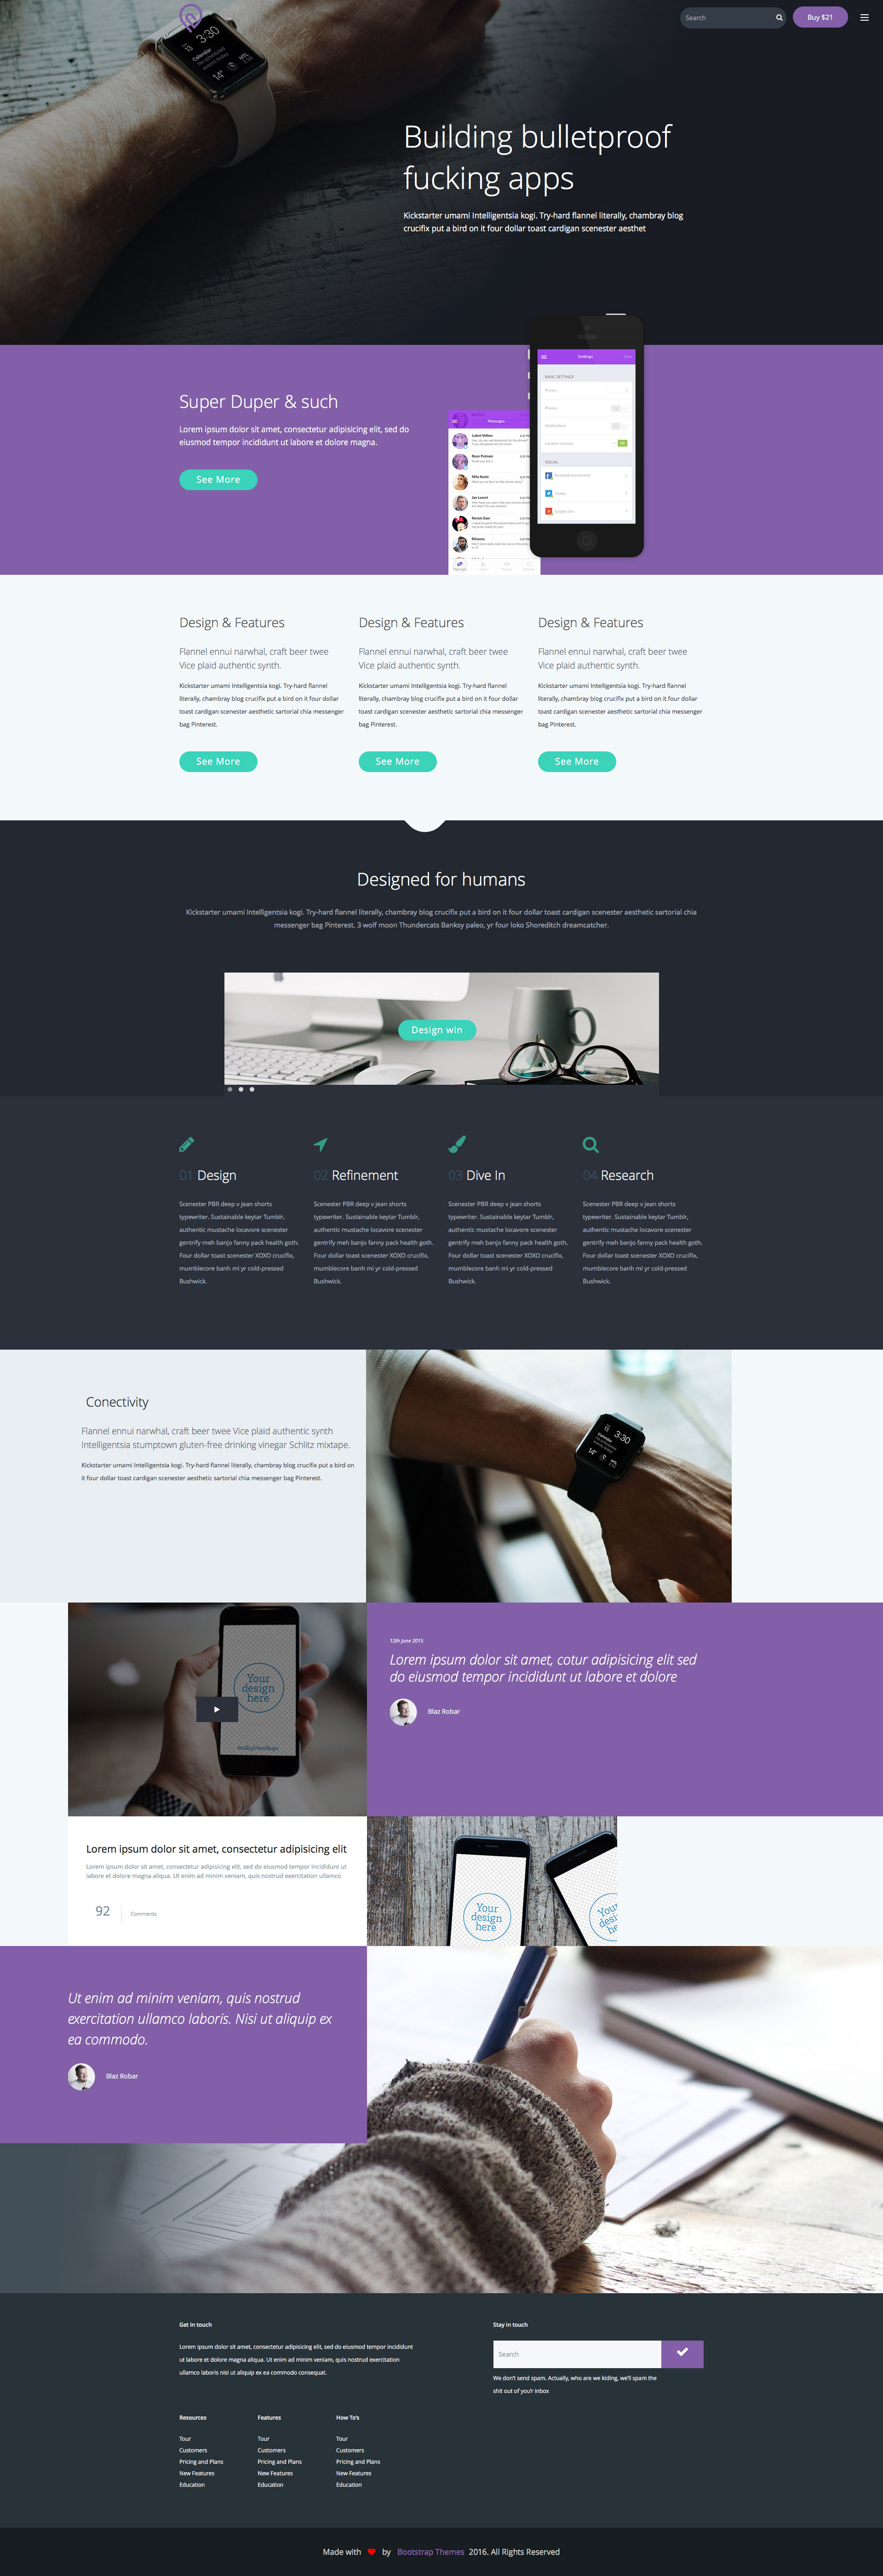 Tork is a free modern responsive HTML5 app landing page template. It is one of the best template for showcase your best application or promote your business on the web. Tork template is built on Bootstrap 3.5 and has been tested across all major browsers and devices so it works well on desktops, tablets, and mobile devices.